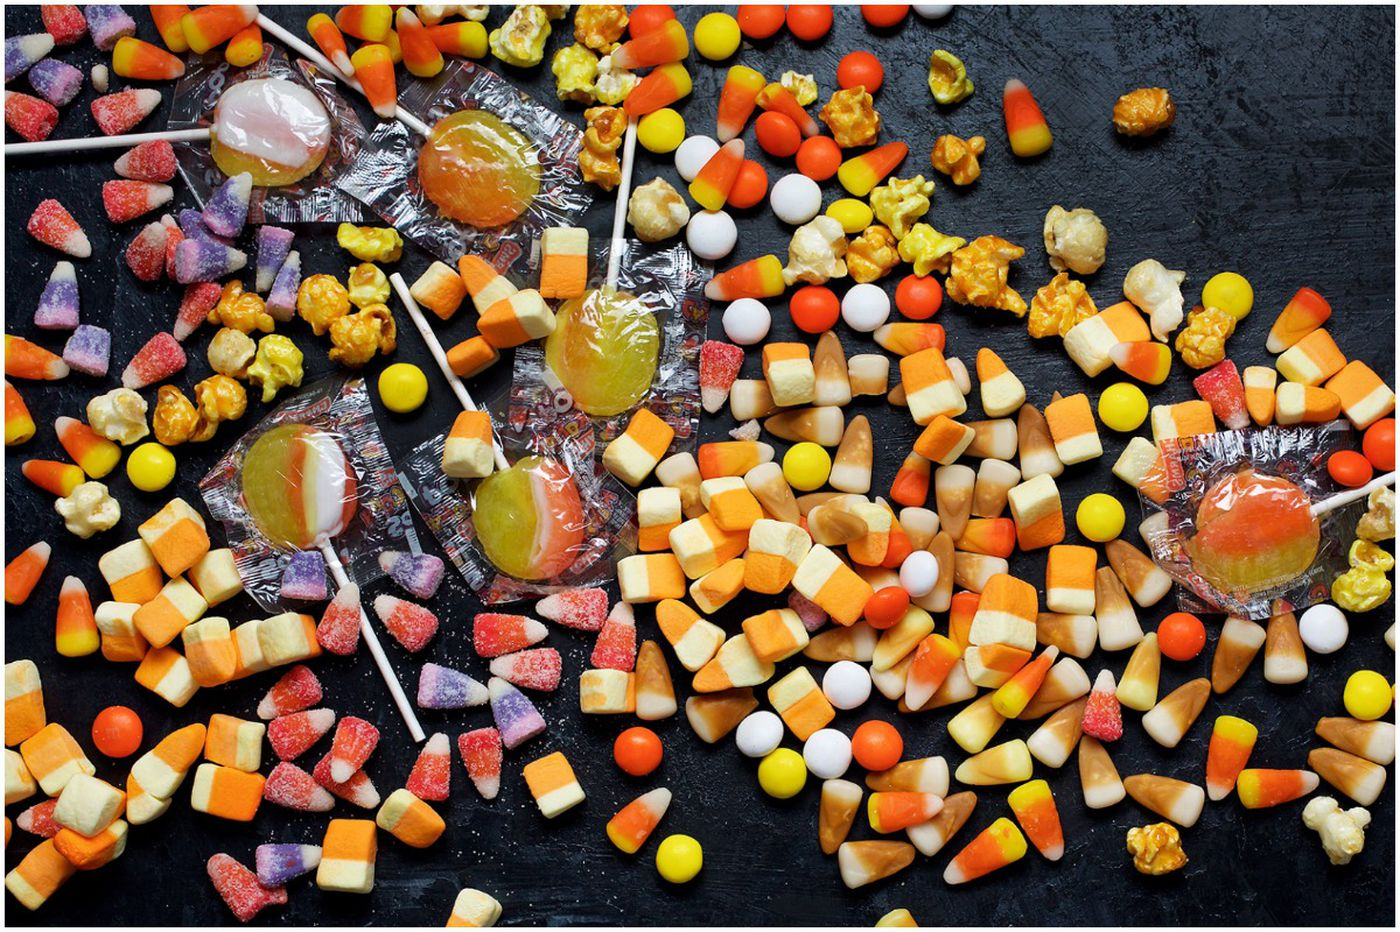 Candy corn has more varieties than ever this Halloween